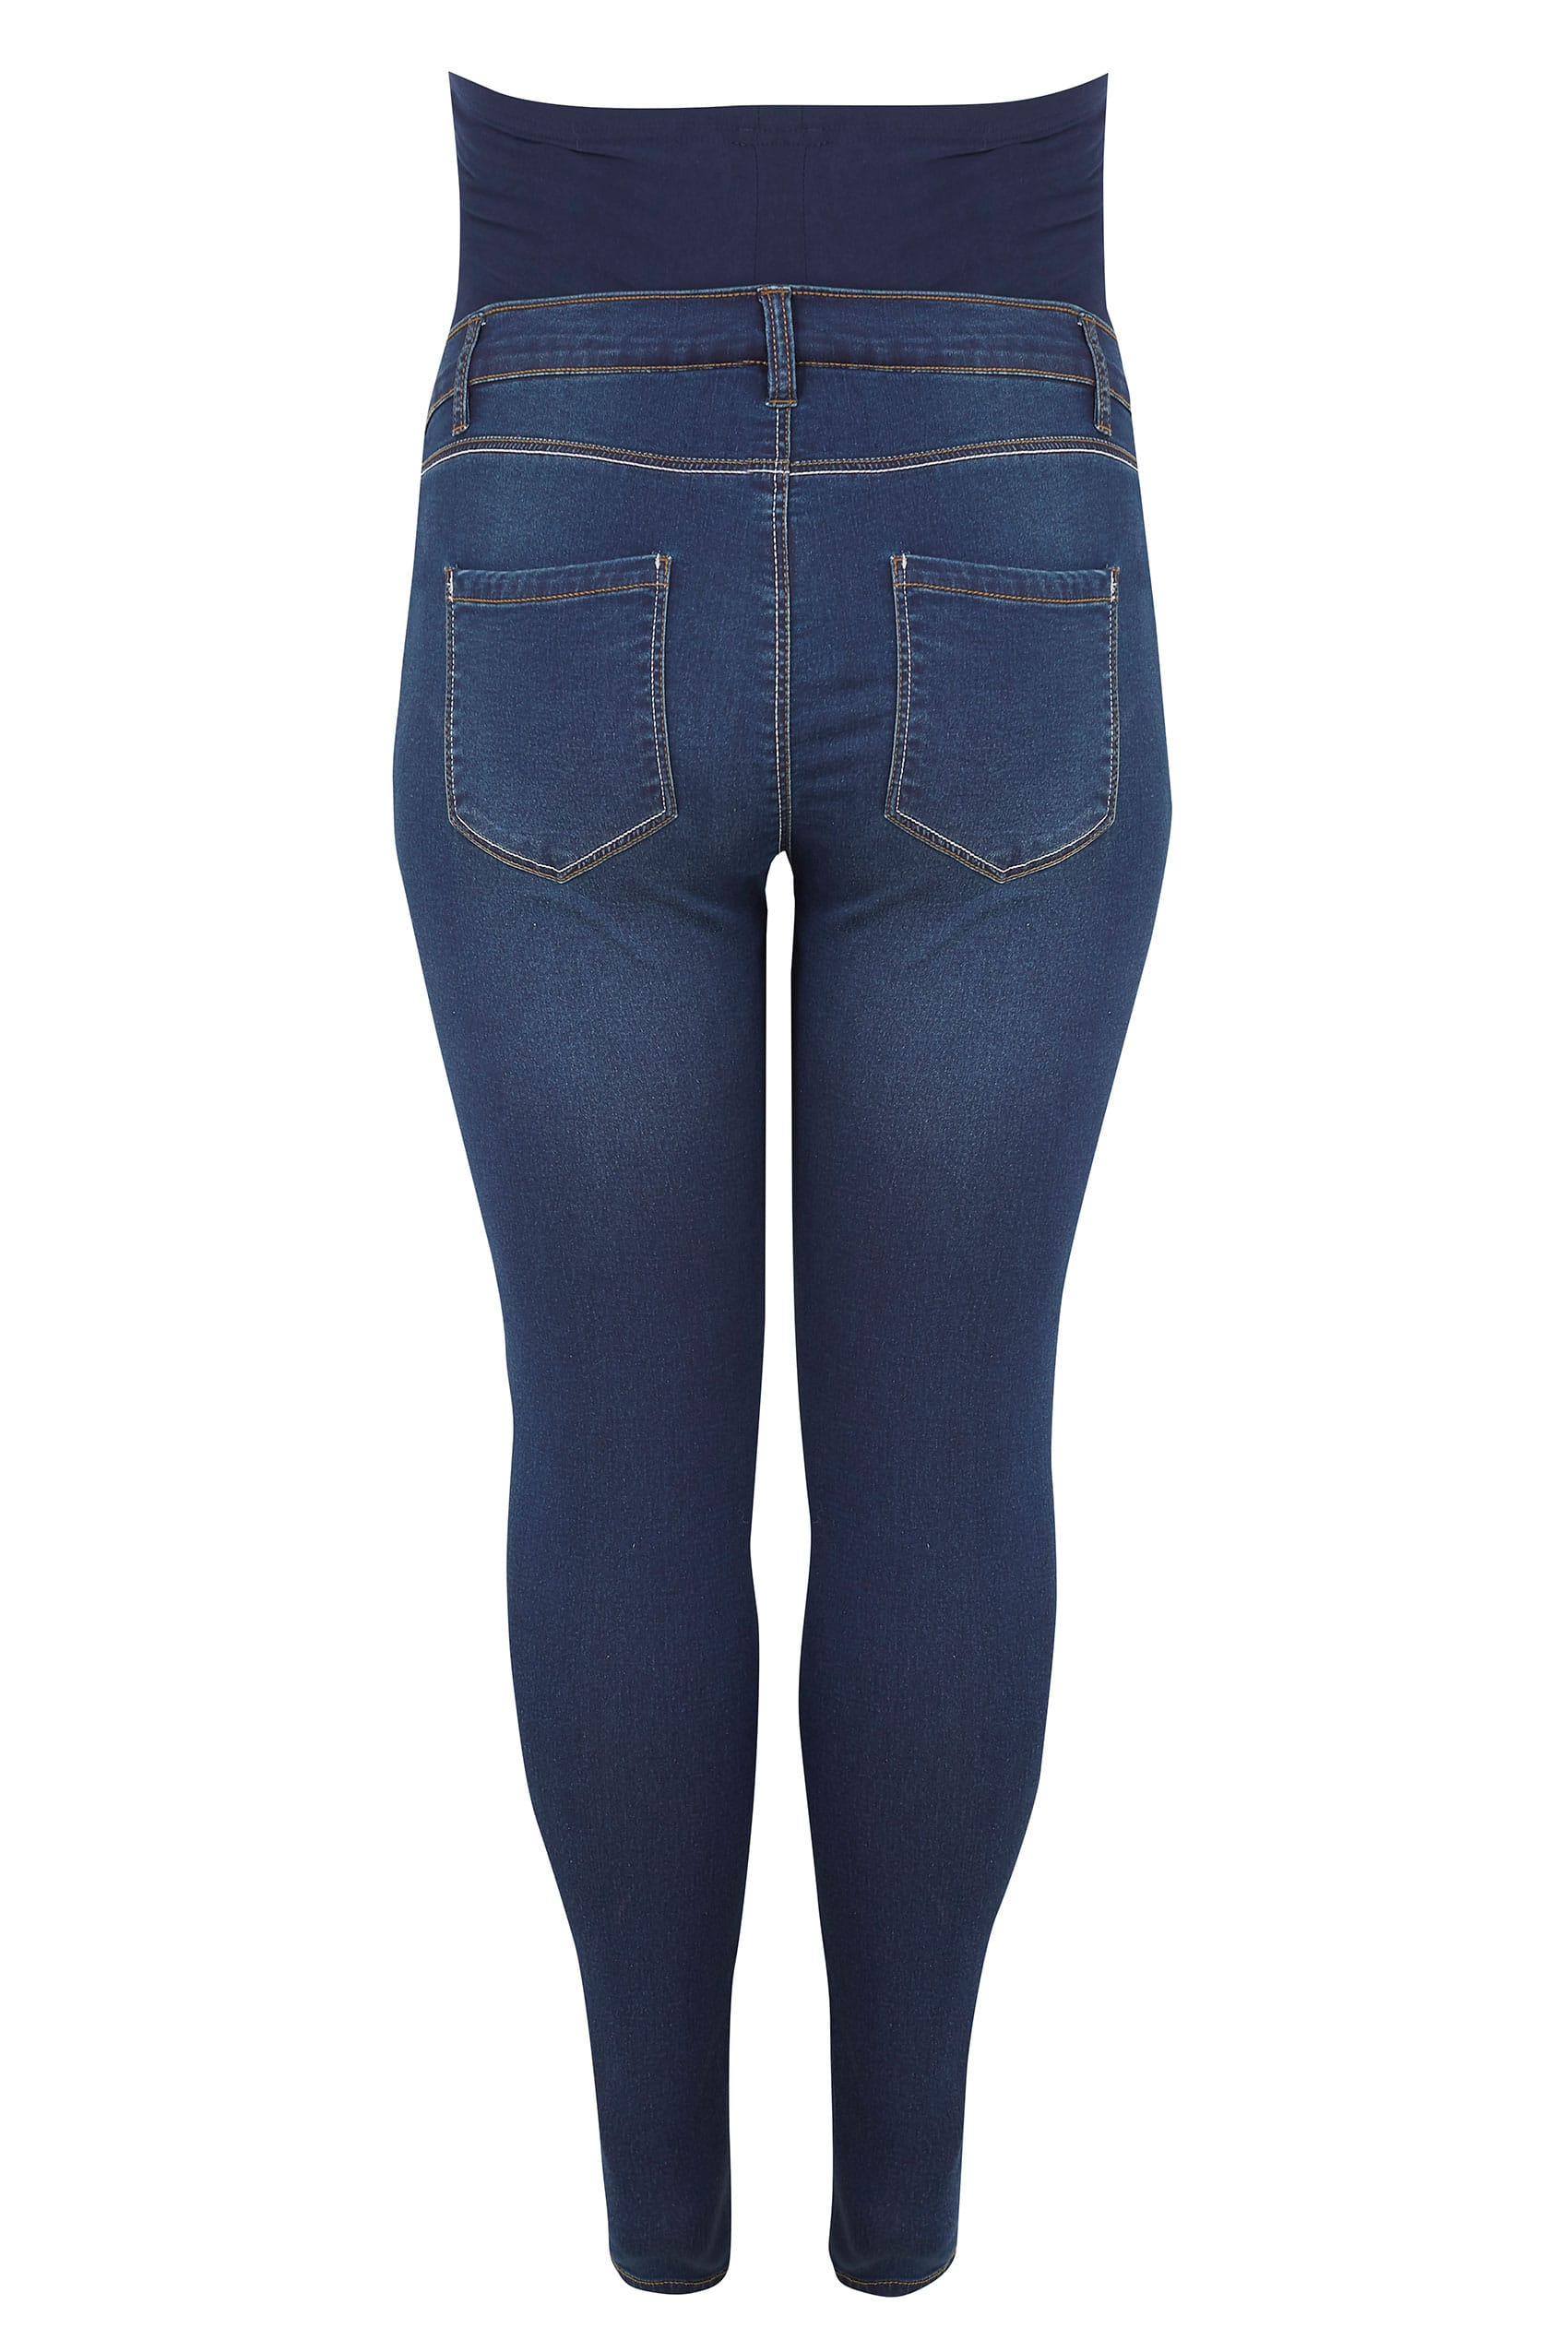 b6acfd05f7440 BUMP IT UP MATERNITY Blue Super Stretch Skinny Jeggings With Comfort Panel